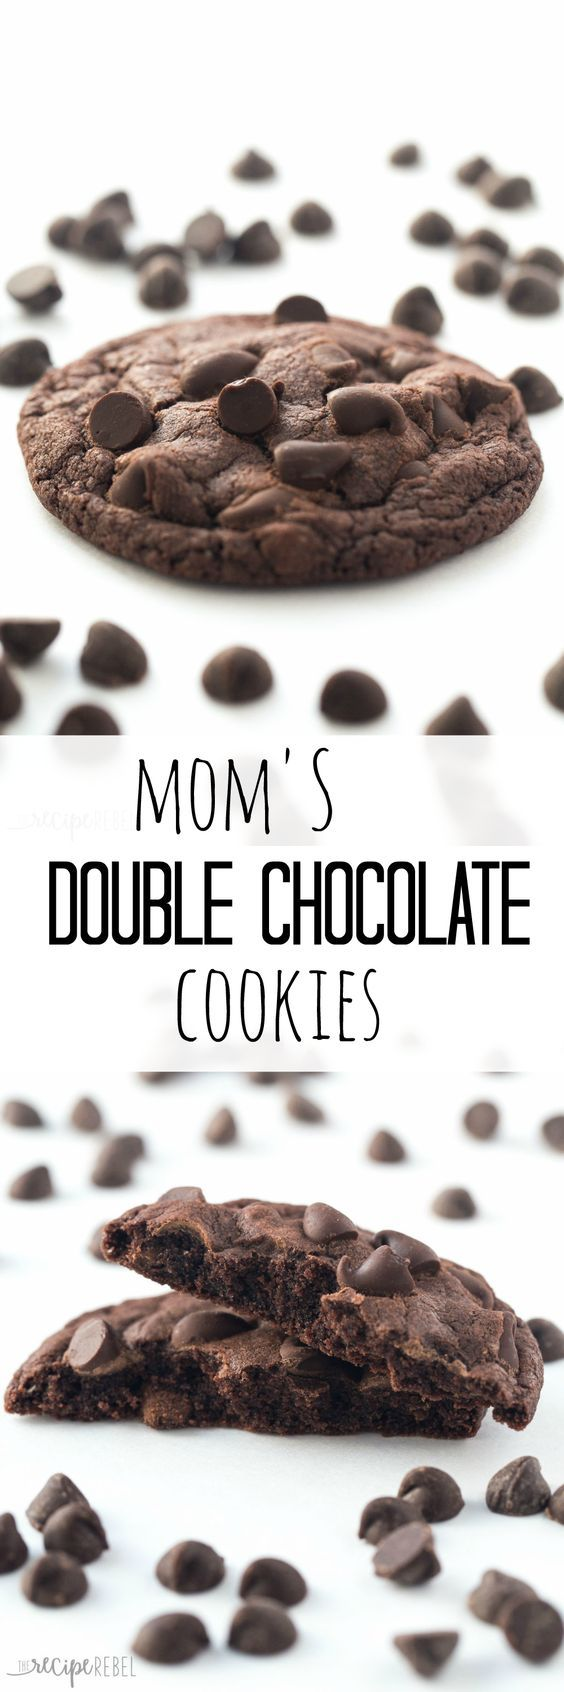 The perfect double chocolate cookies — rich, chocolately, chewy and never fluffy! Plus no chilling!